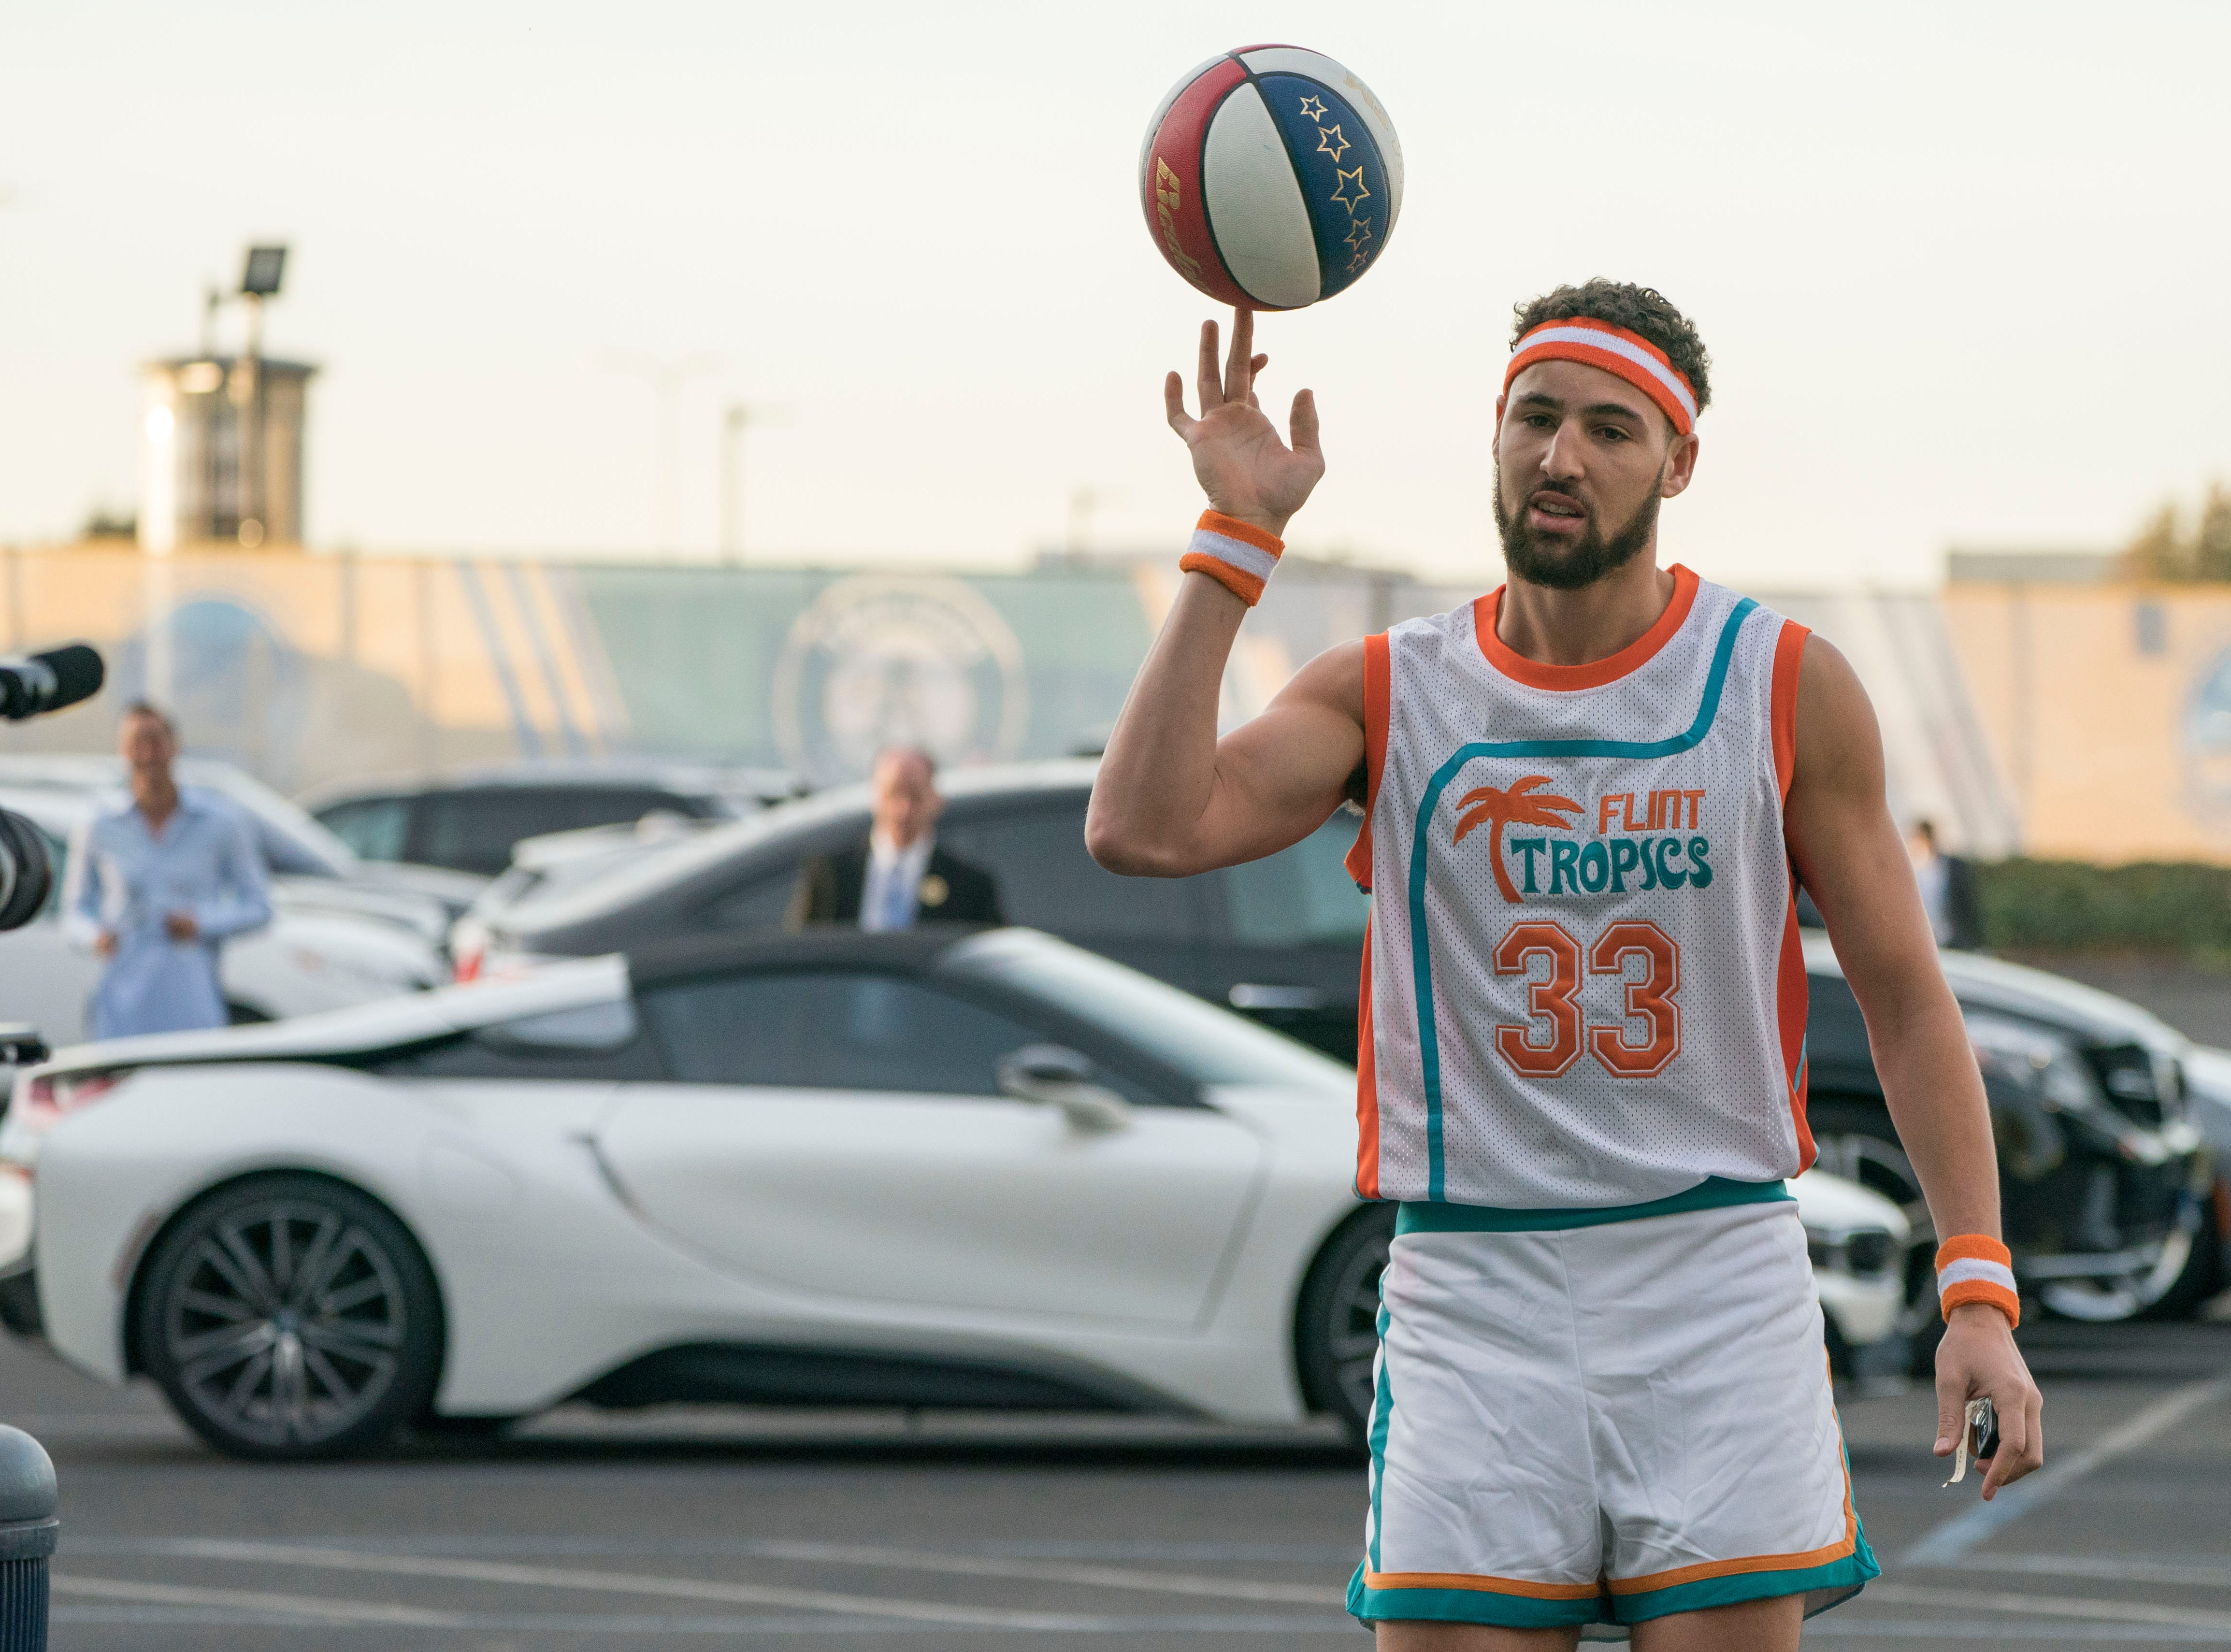 Oct. 31: Golden State Warriors guard Klay Thompson wears a Jackie Moon costume before the game against the New Orleans Pelicans.